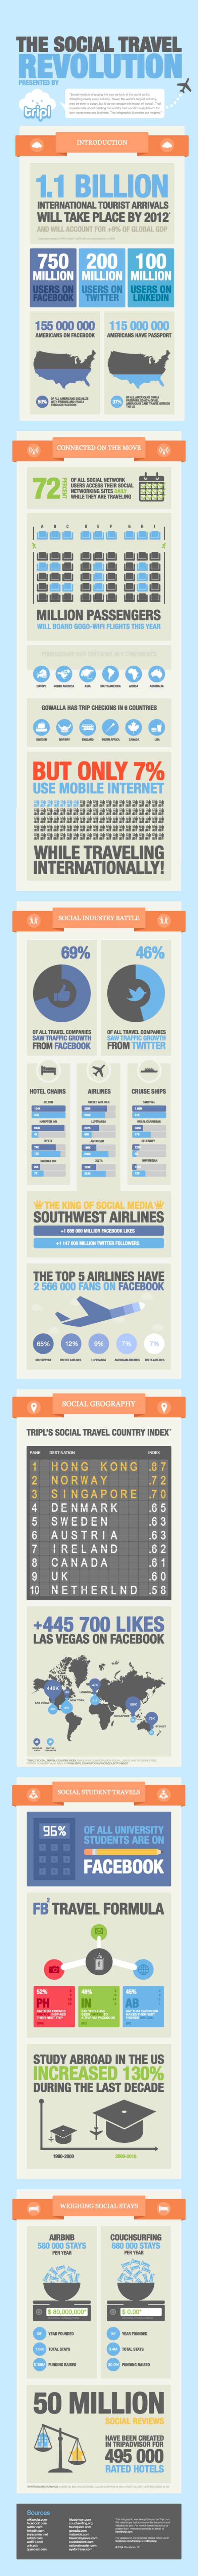 More Americans Are On Facebook Than Have A Passport [INFOGRAPHIC] tripl social travel infographic